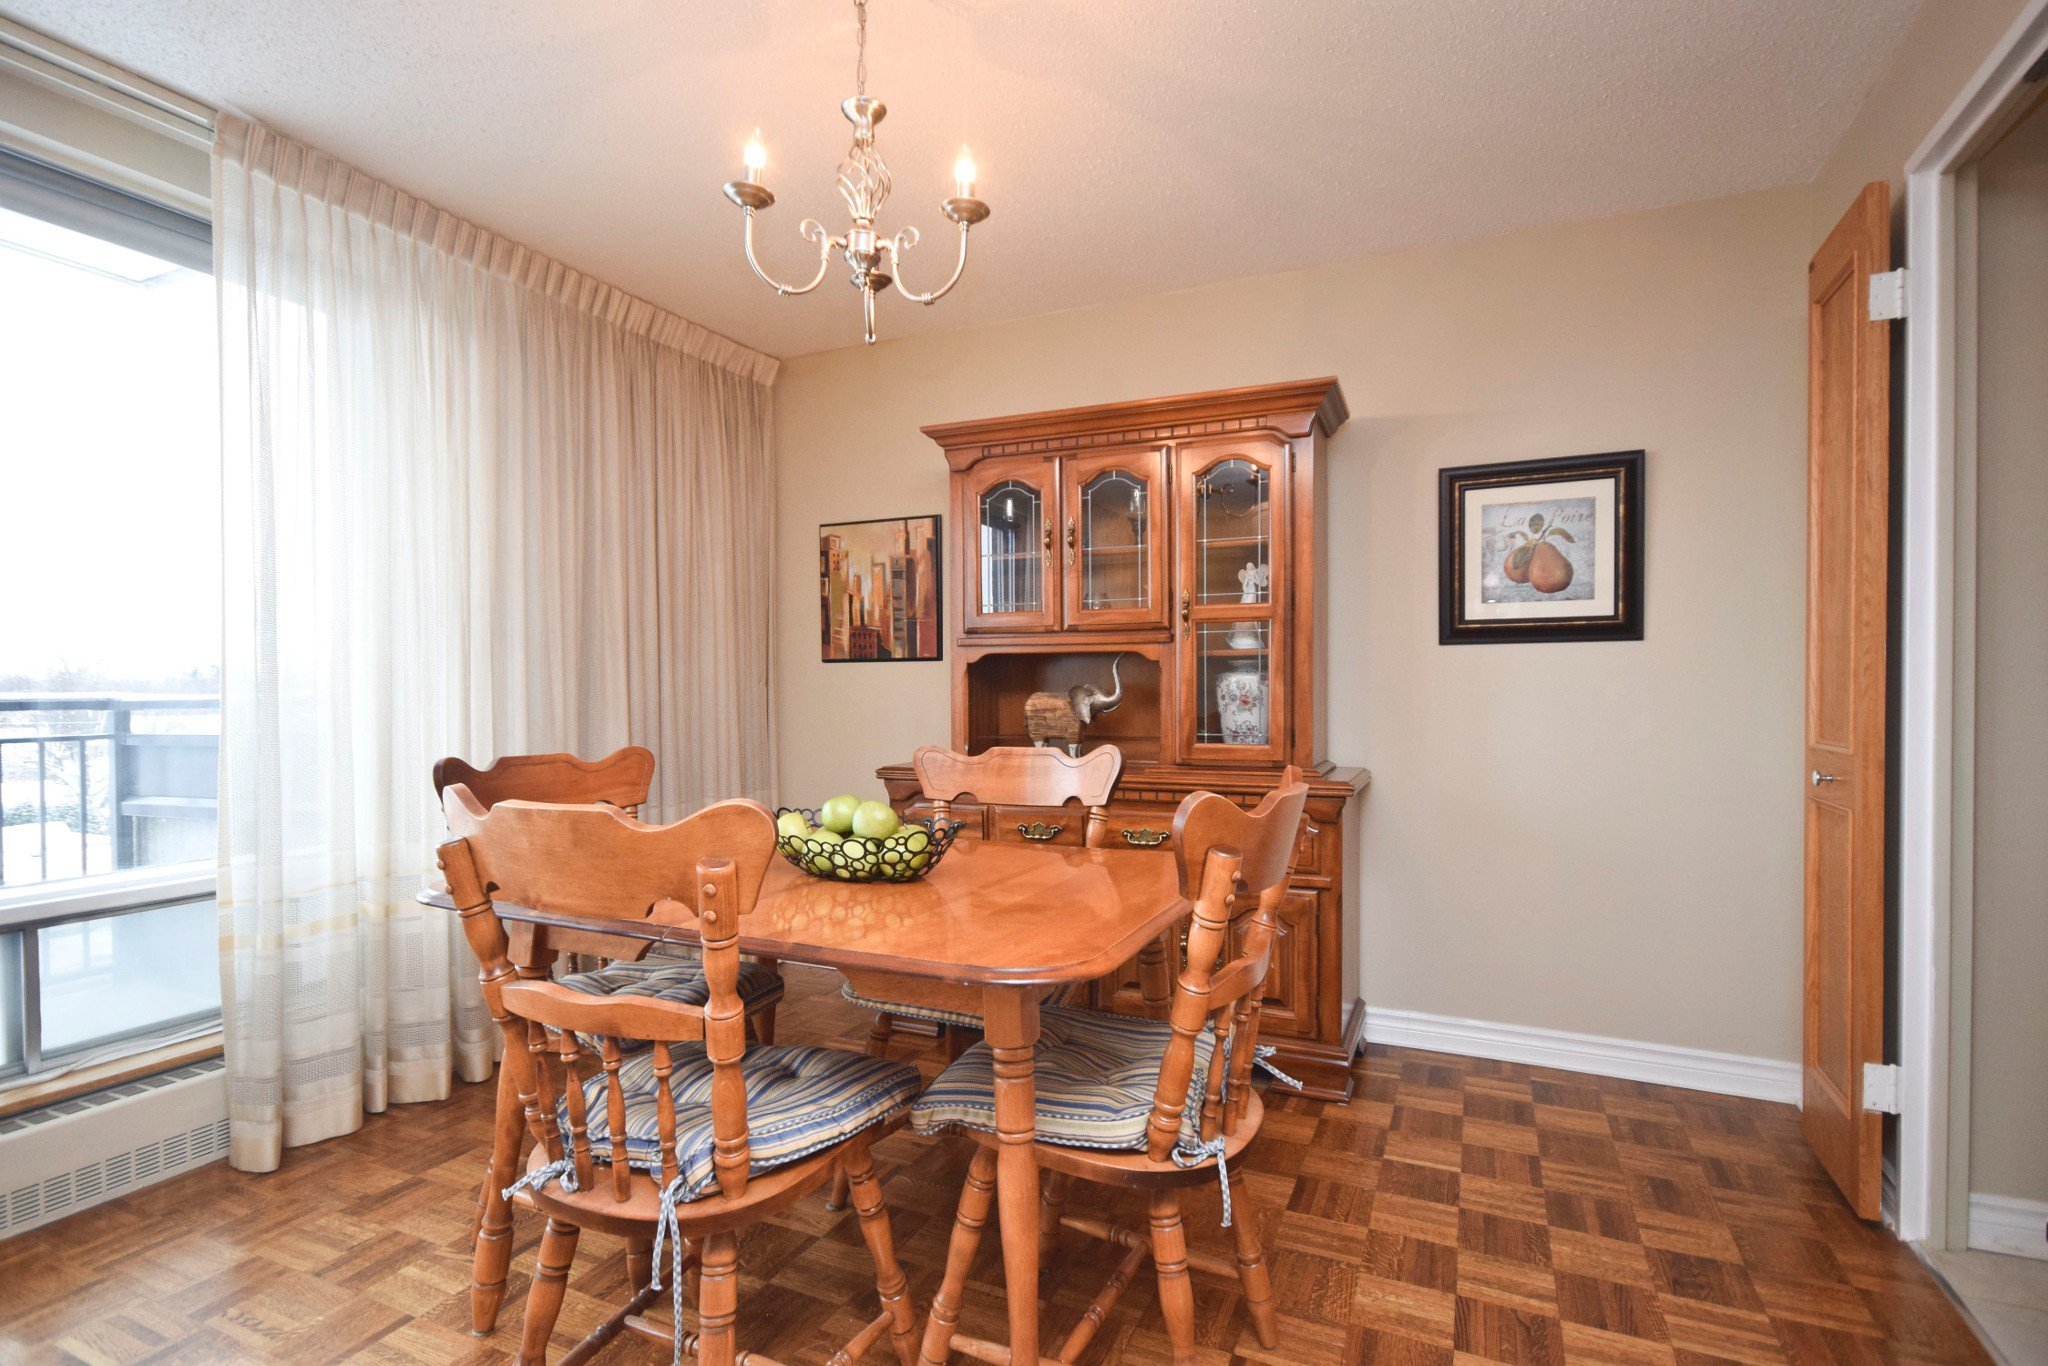 Photo 18: Photos: 515 1465 BASELINE Road in Ottawa: Copeland Park House for sale : MLS®# 1133550